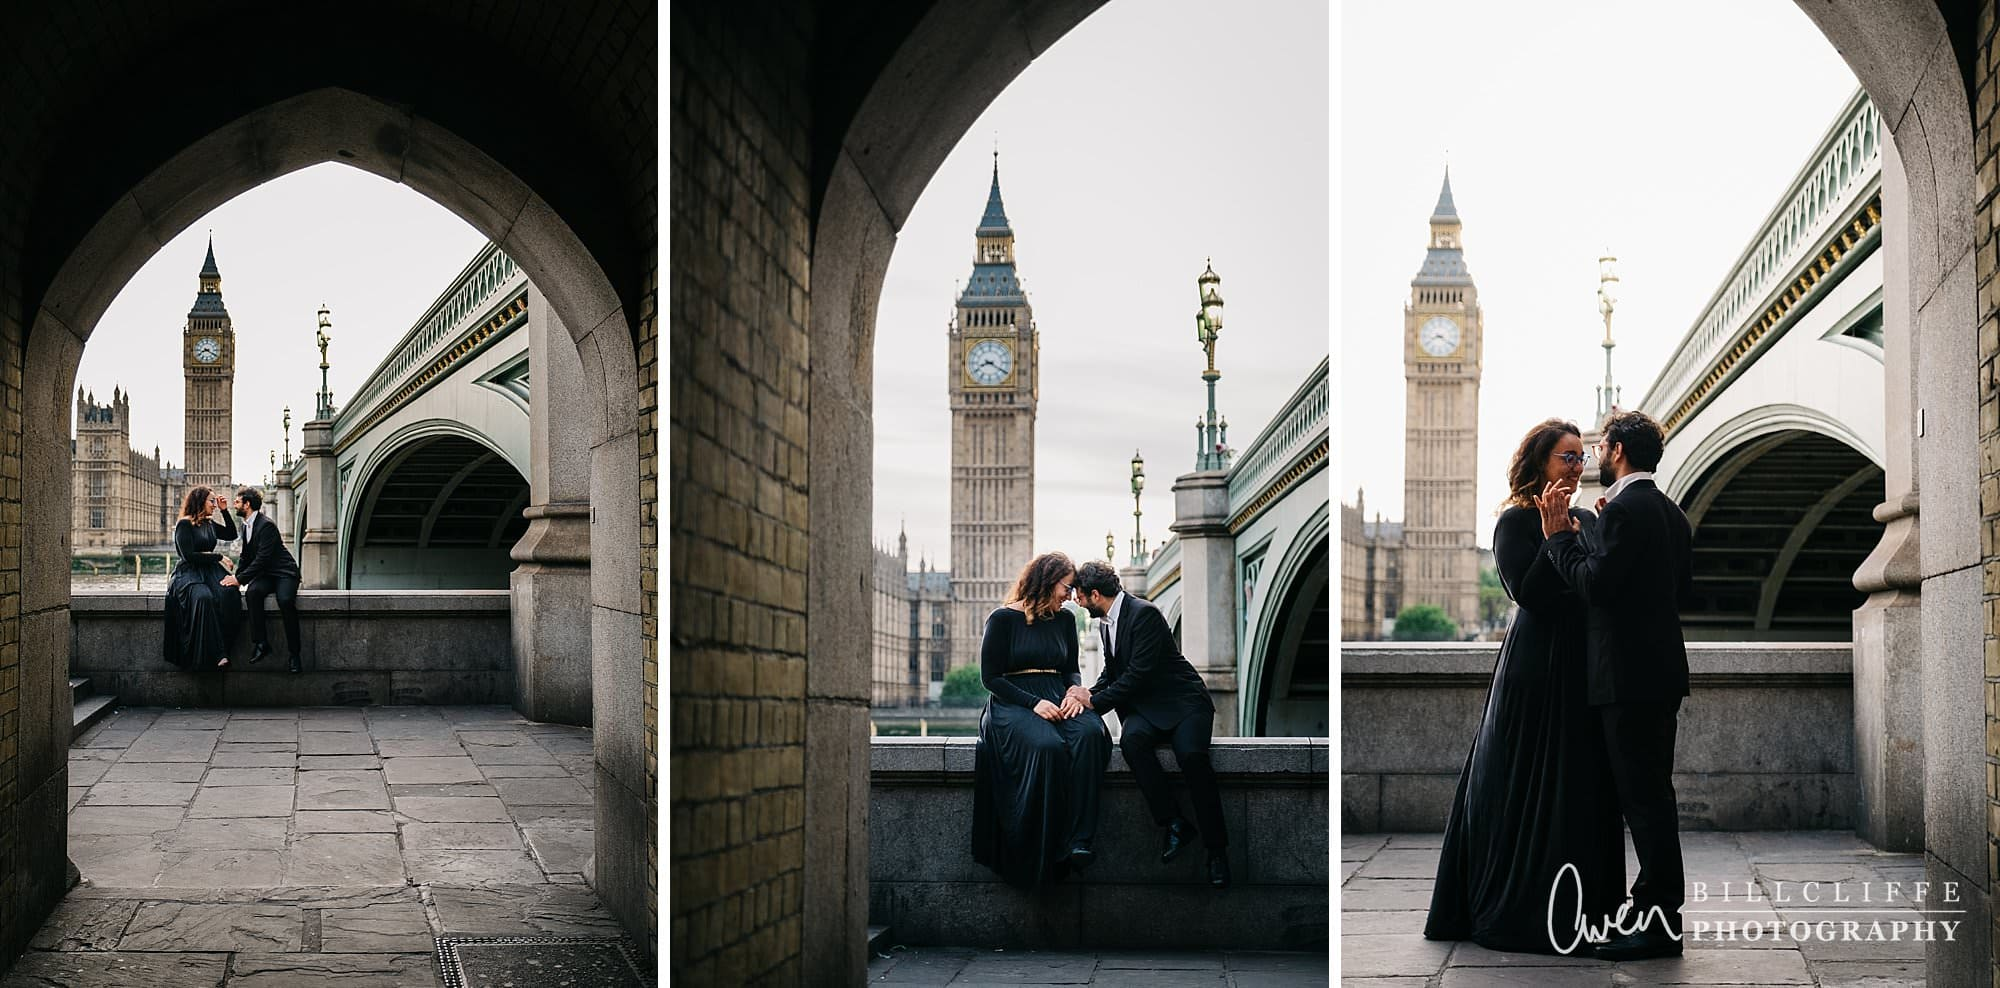 london engagement proposal photographer routemaster gr 024 - A Romantic Marriage Proposal on a London Routemaster Bus